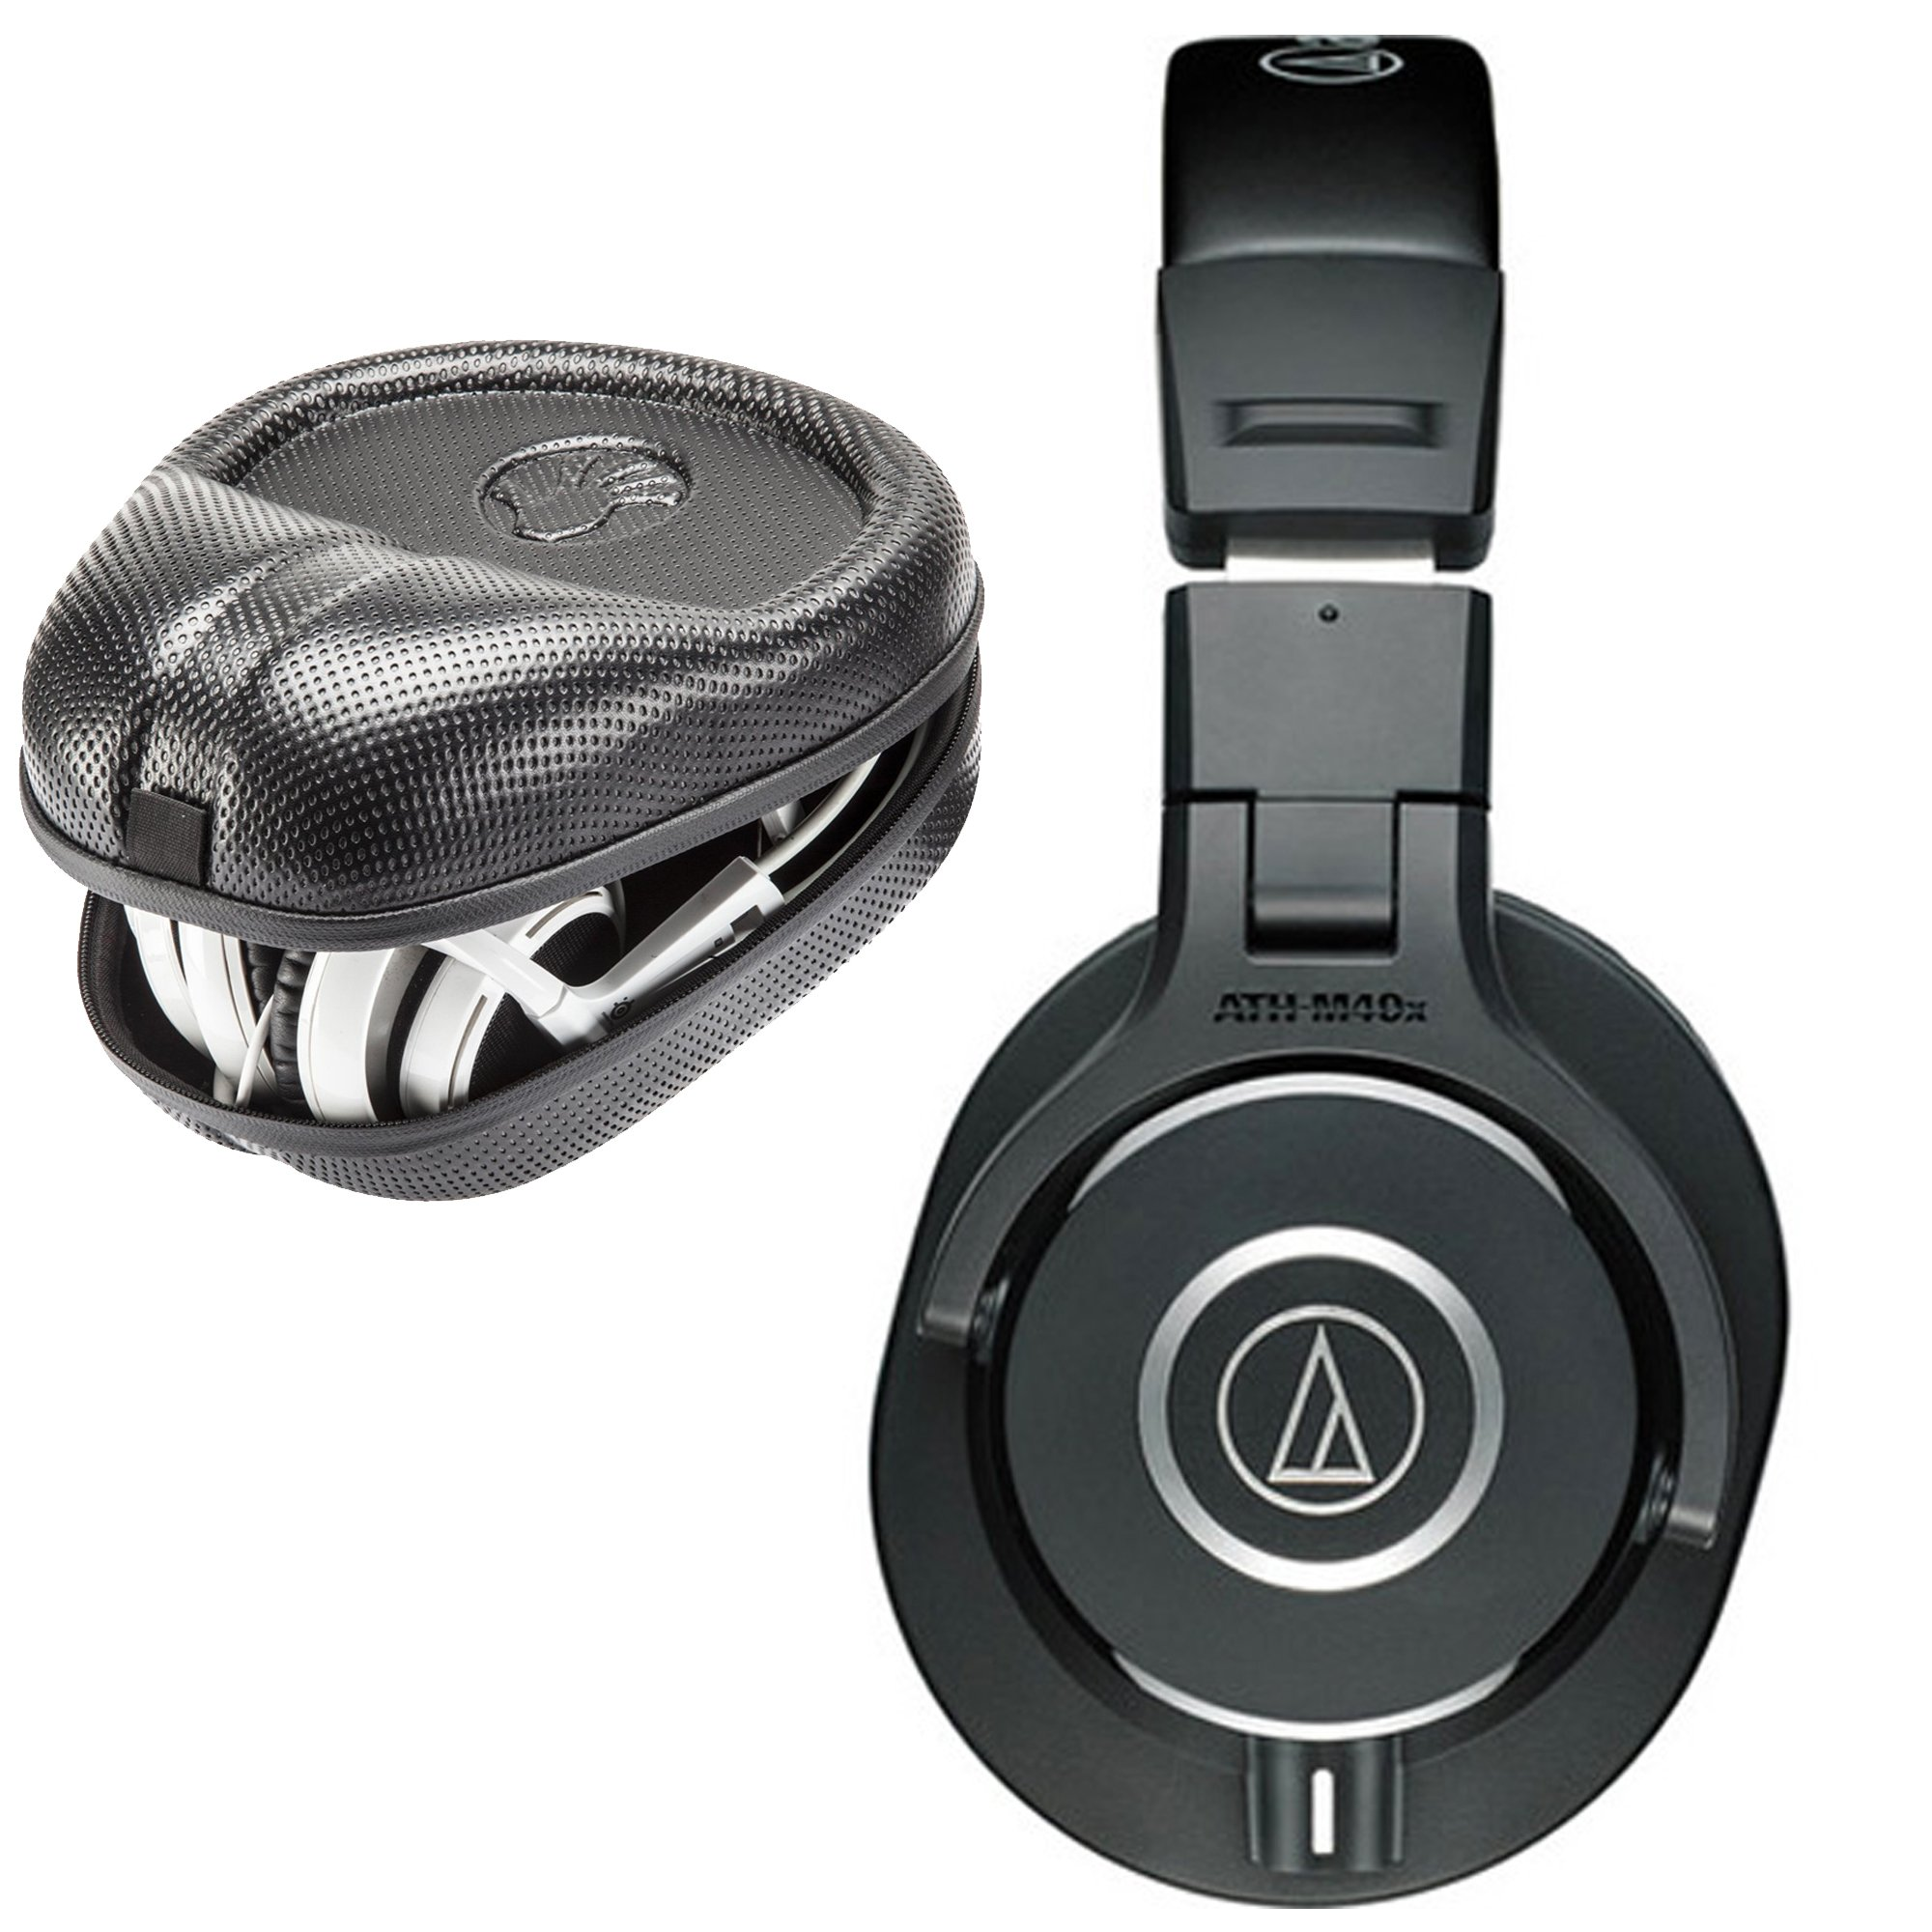 Audio-Technica ATH-M40x Monitor Headphones with SLAPPA SL-HP-07 Full Sized HardBody PRO Headphone Case